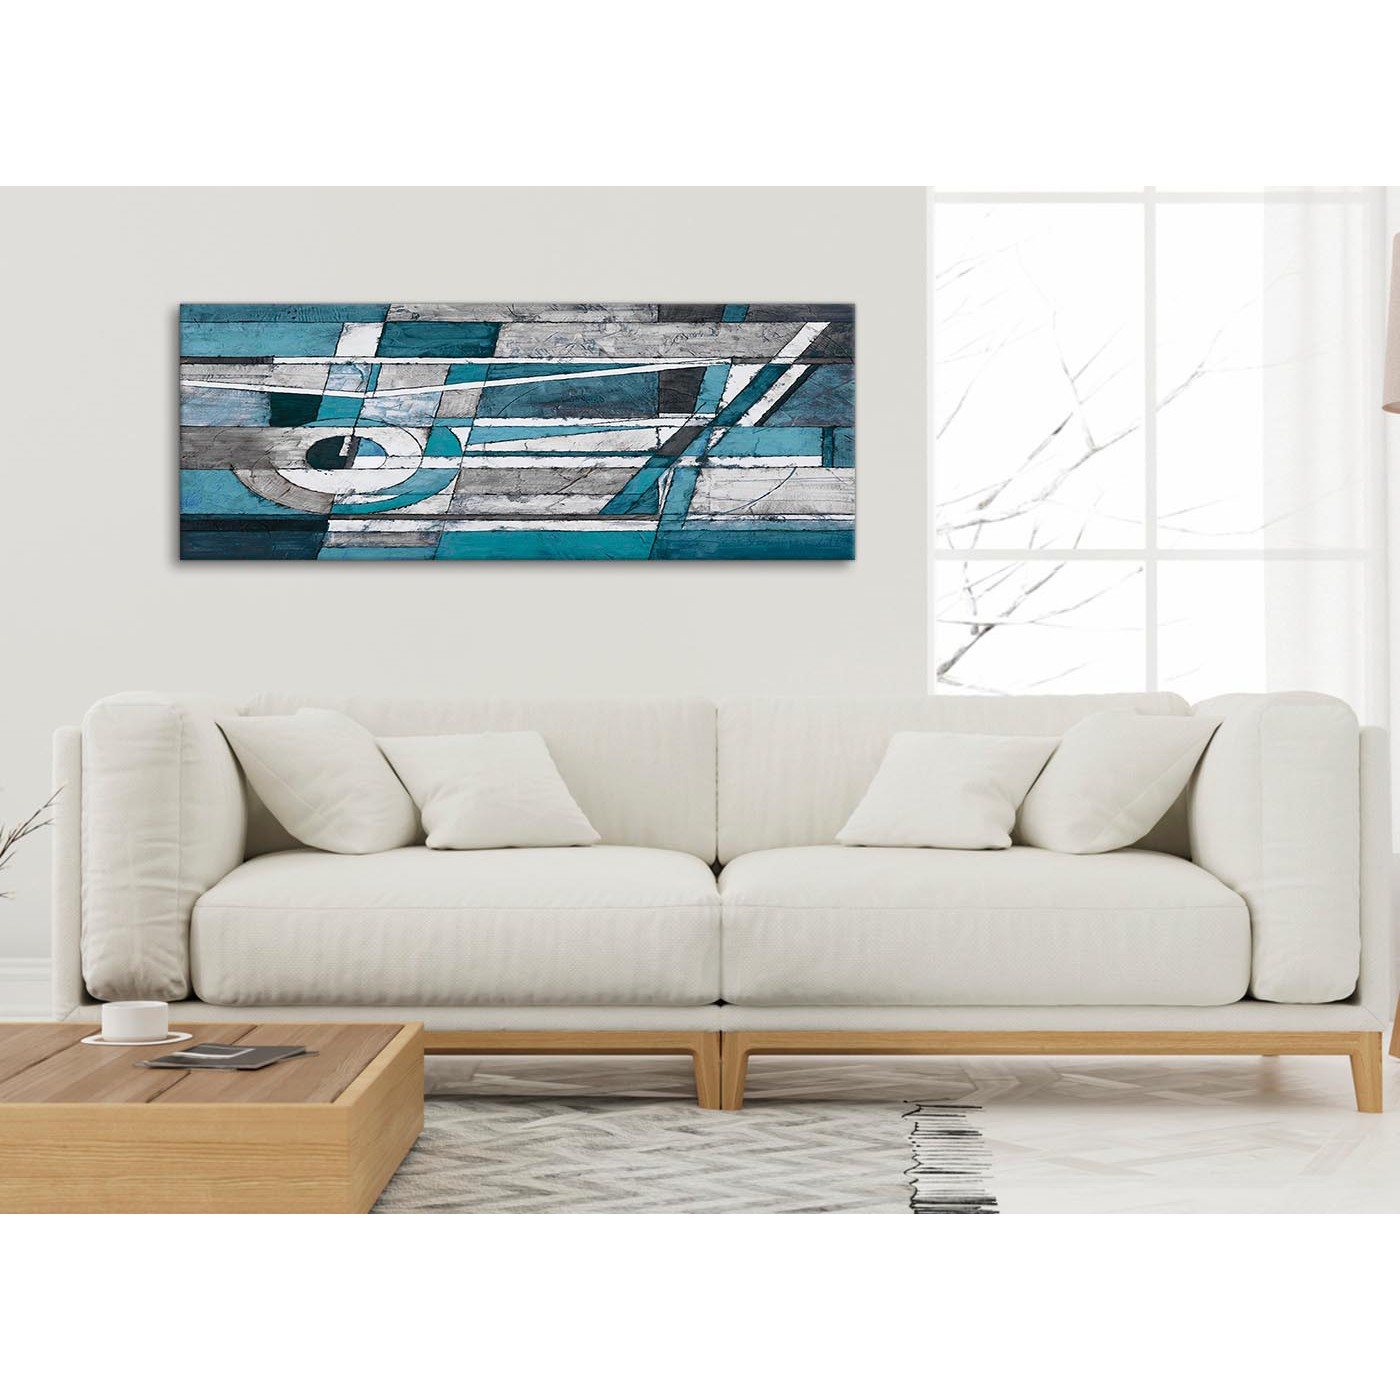 Teal grey painting living room canvas wall art accessories abstract 1402 120cm print - Living room canvas art ...